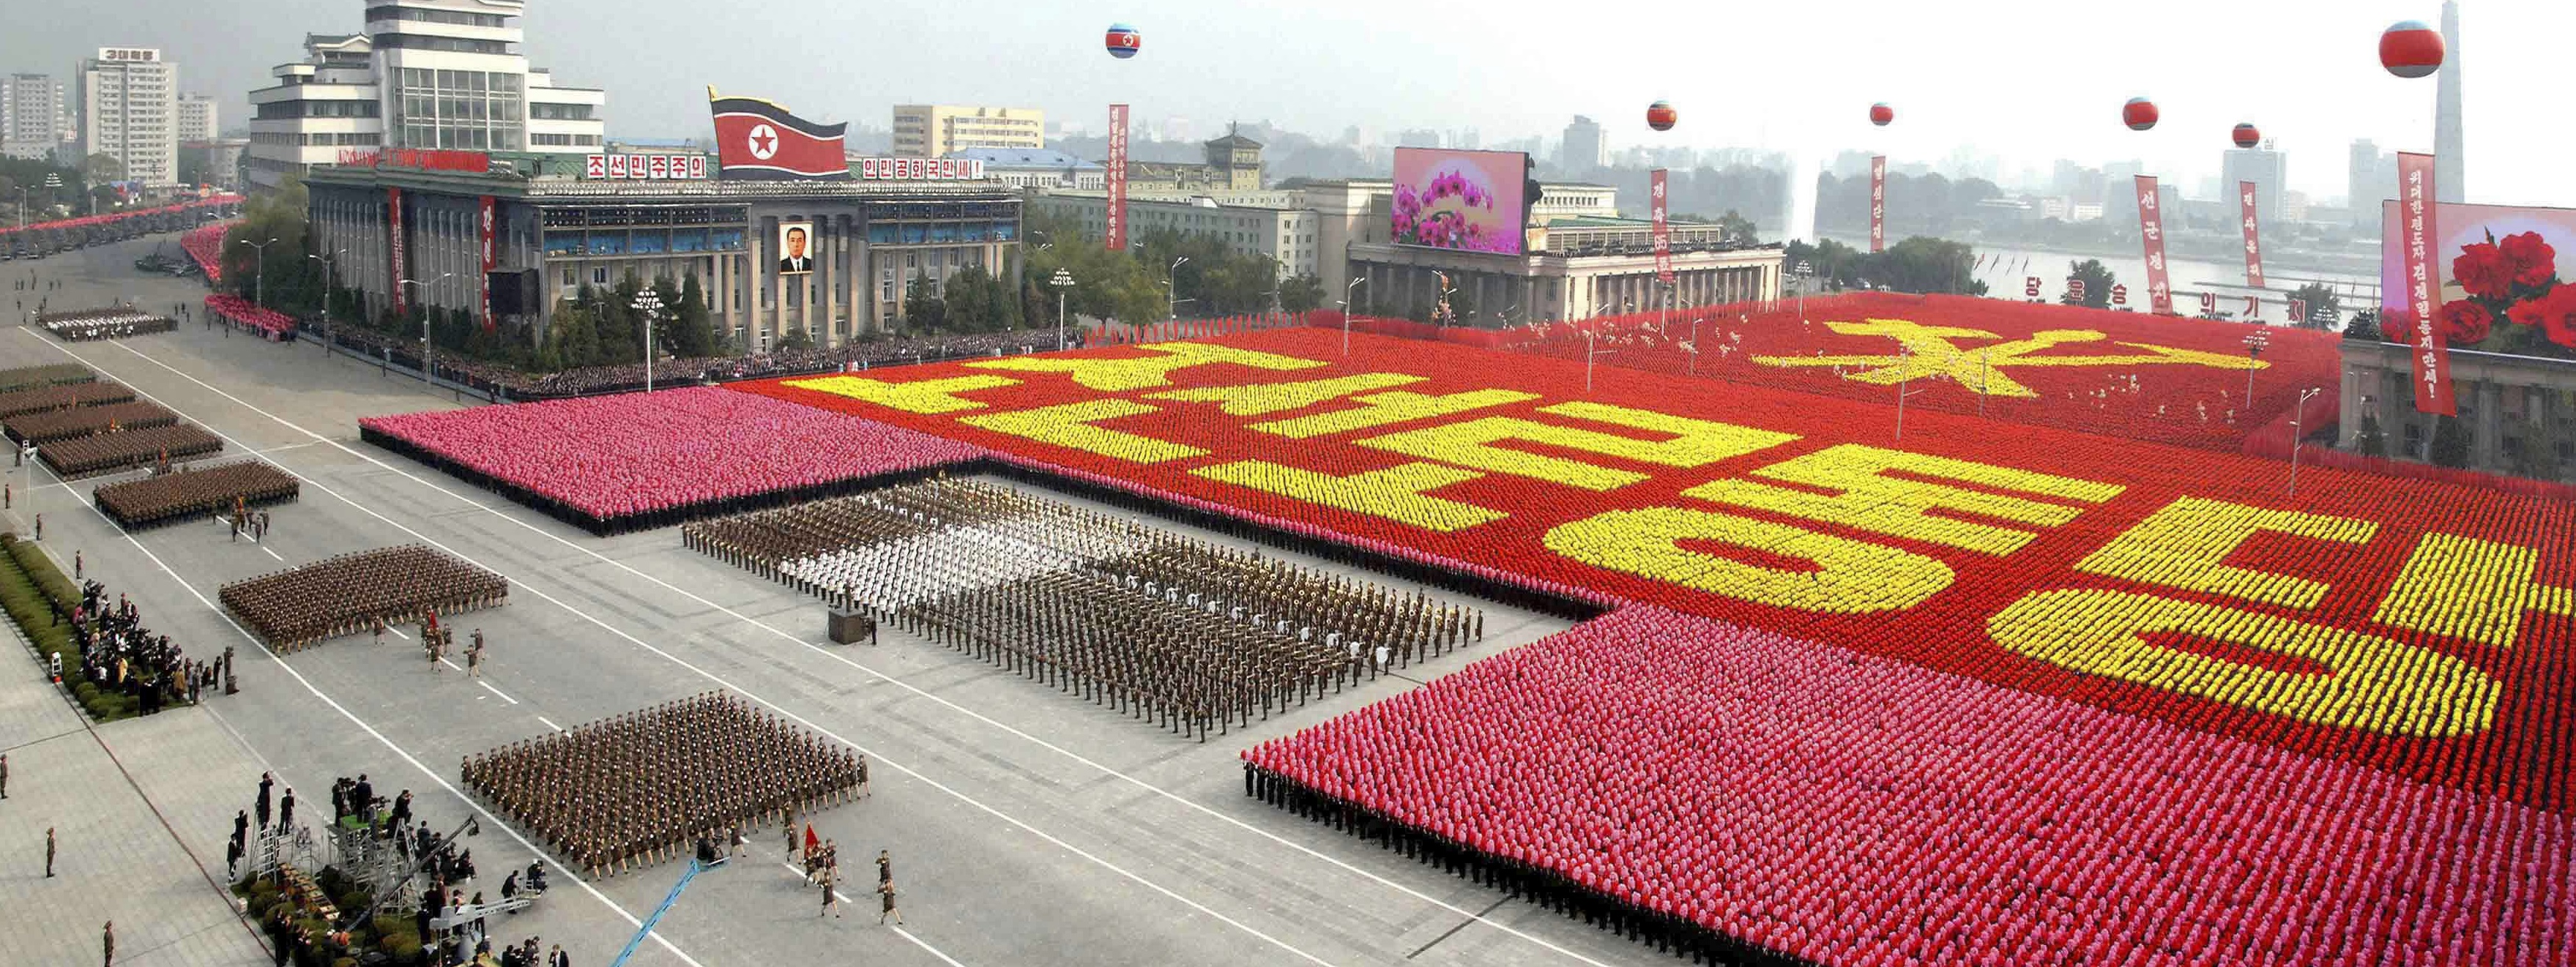 """A view of a parade to commemorate the 65th anniversary of the founding of the Workers' Party of Korea in Pyongyang in this October 10, 2010 file photo.  North Korean leader Kim Jong-il died on a train trip, state television reported on December 19, 2011 sparking immediate concern over who is in control of the reclusive state and its nuclear programme. A tearful announcer dressed in black said the 69-year old had died on December 17, 2011 of physical and mental over-work on his way to give """"field guidance"""".    REUTERS/KCNA/Files (NORTH KOREA - Tags: POLITICS MILITARY ANNIVERSARY OBITUARY) NO THIRD PARTY SALES. NOT FOR USE BY REUTERS THIRD PARTY DISTRIBUTORS"""